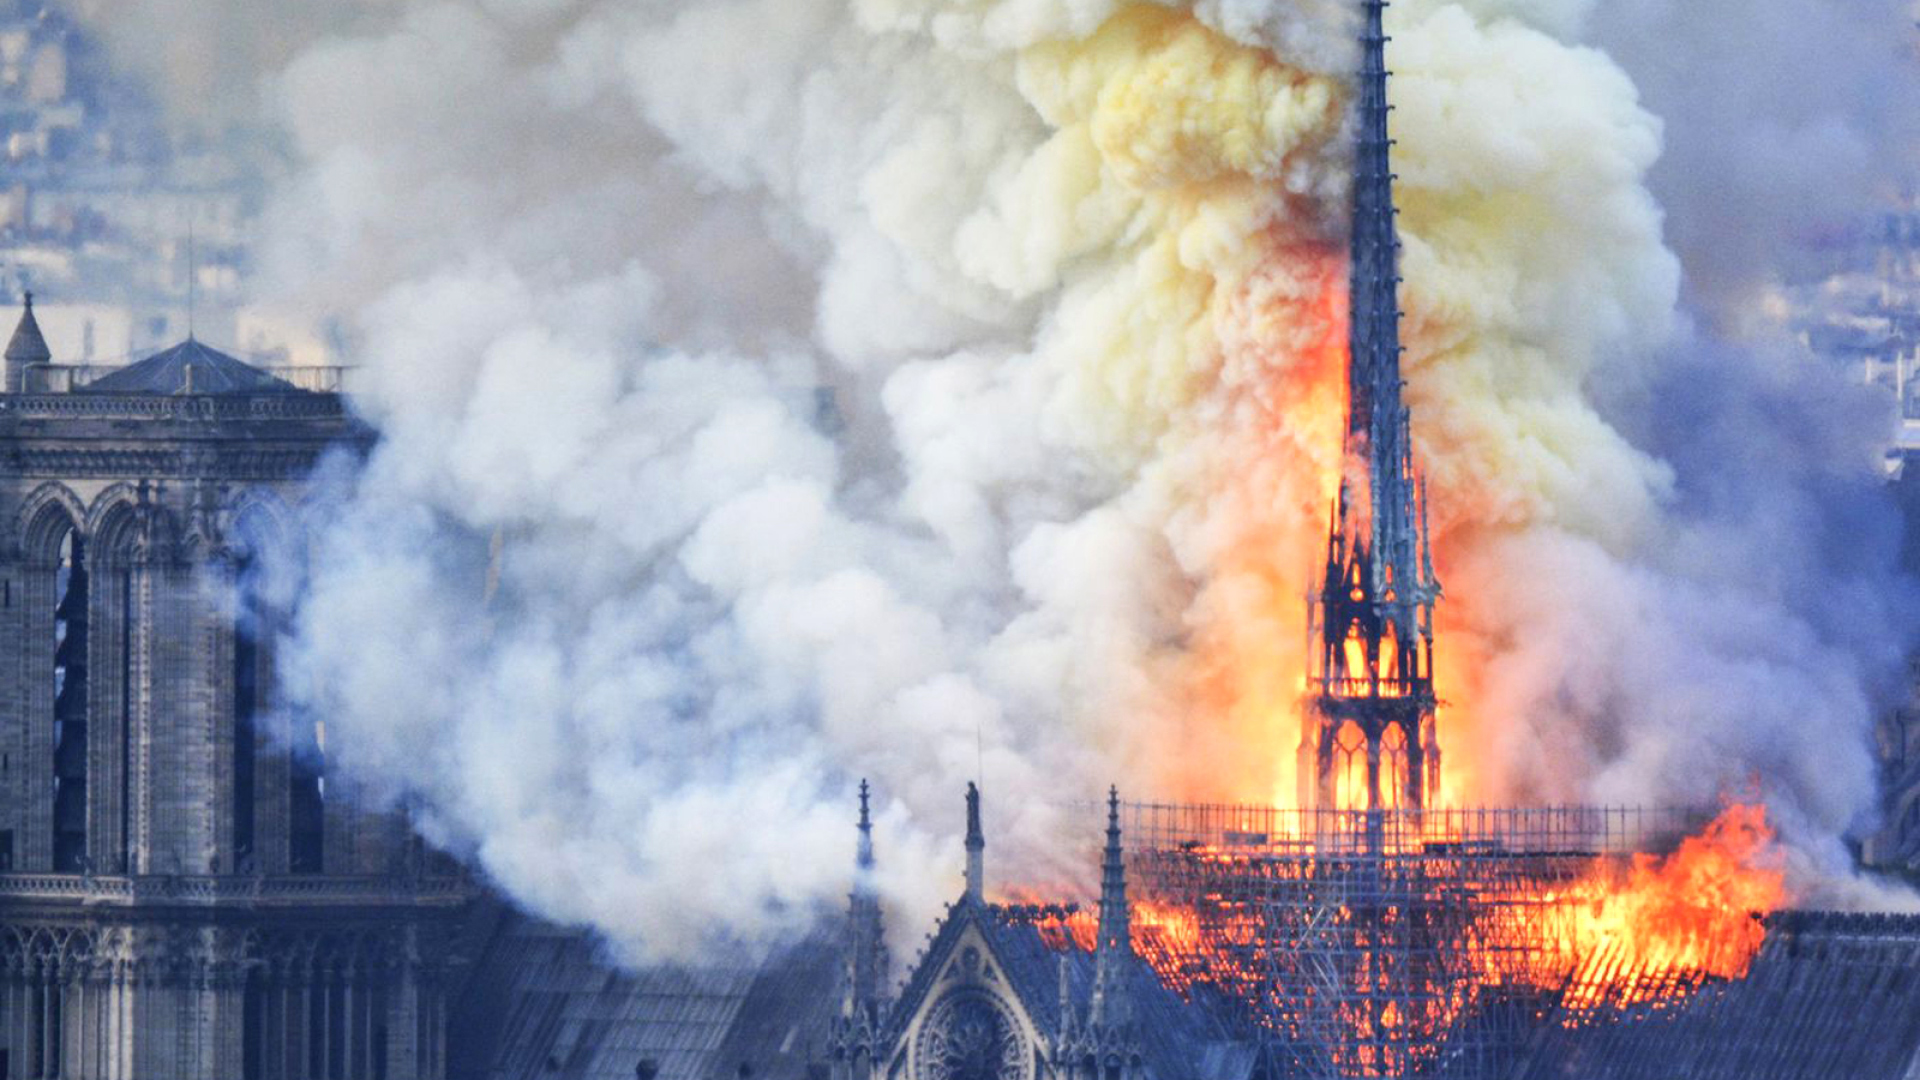 Notre-Dame Cathedral, Paris, engulfed in flames in April 2019| France | Paris | STIR